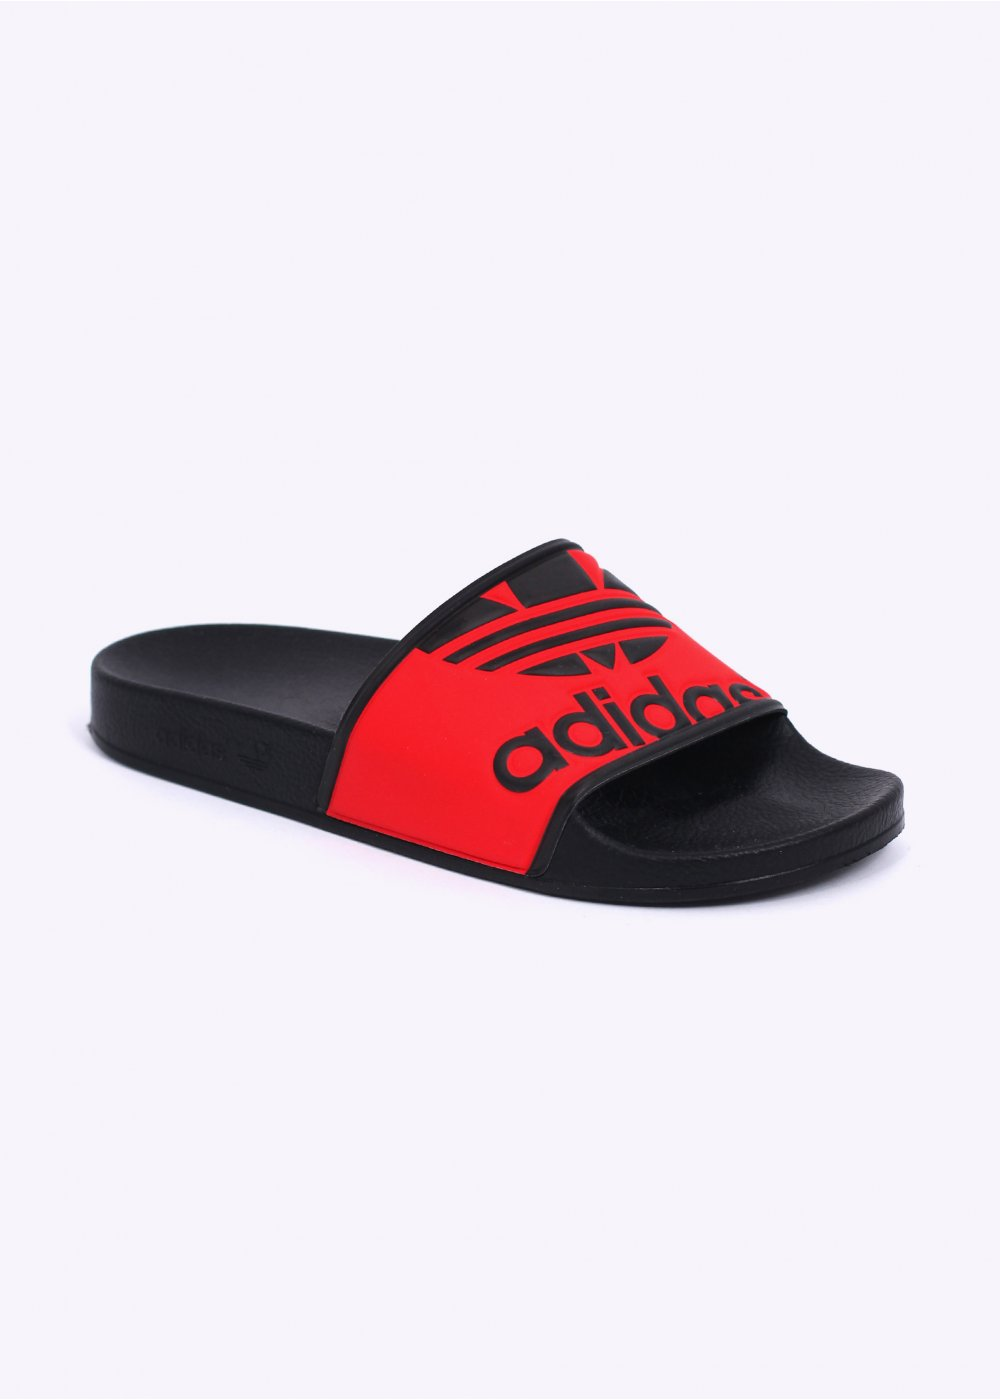 a560971cd adidas adilette trefoil on sale   OFF60% Discounted